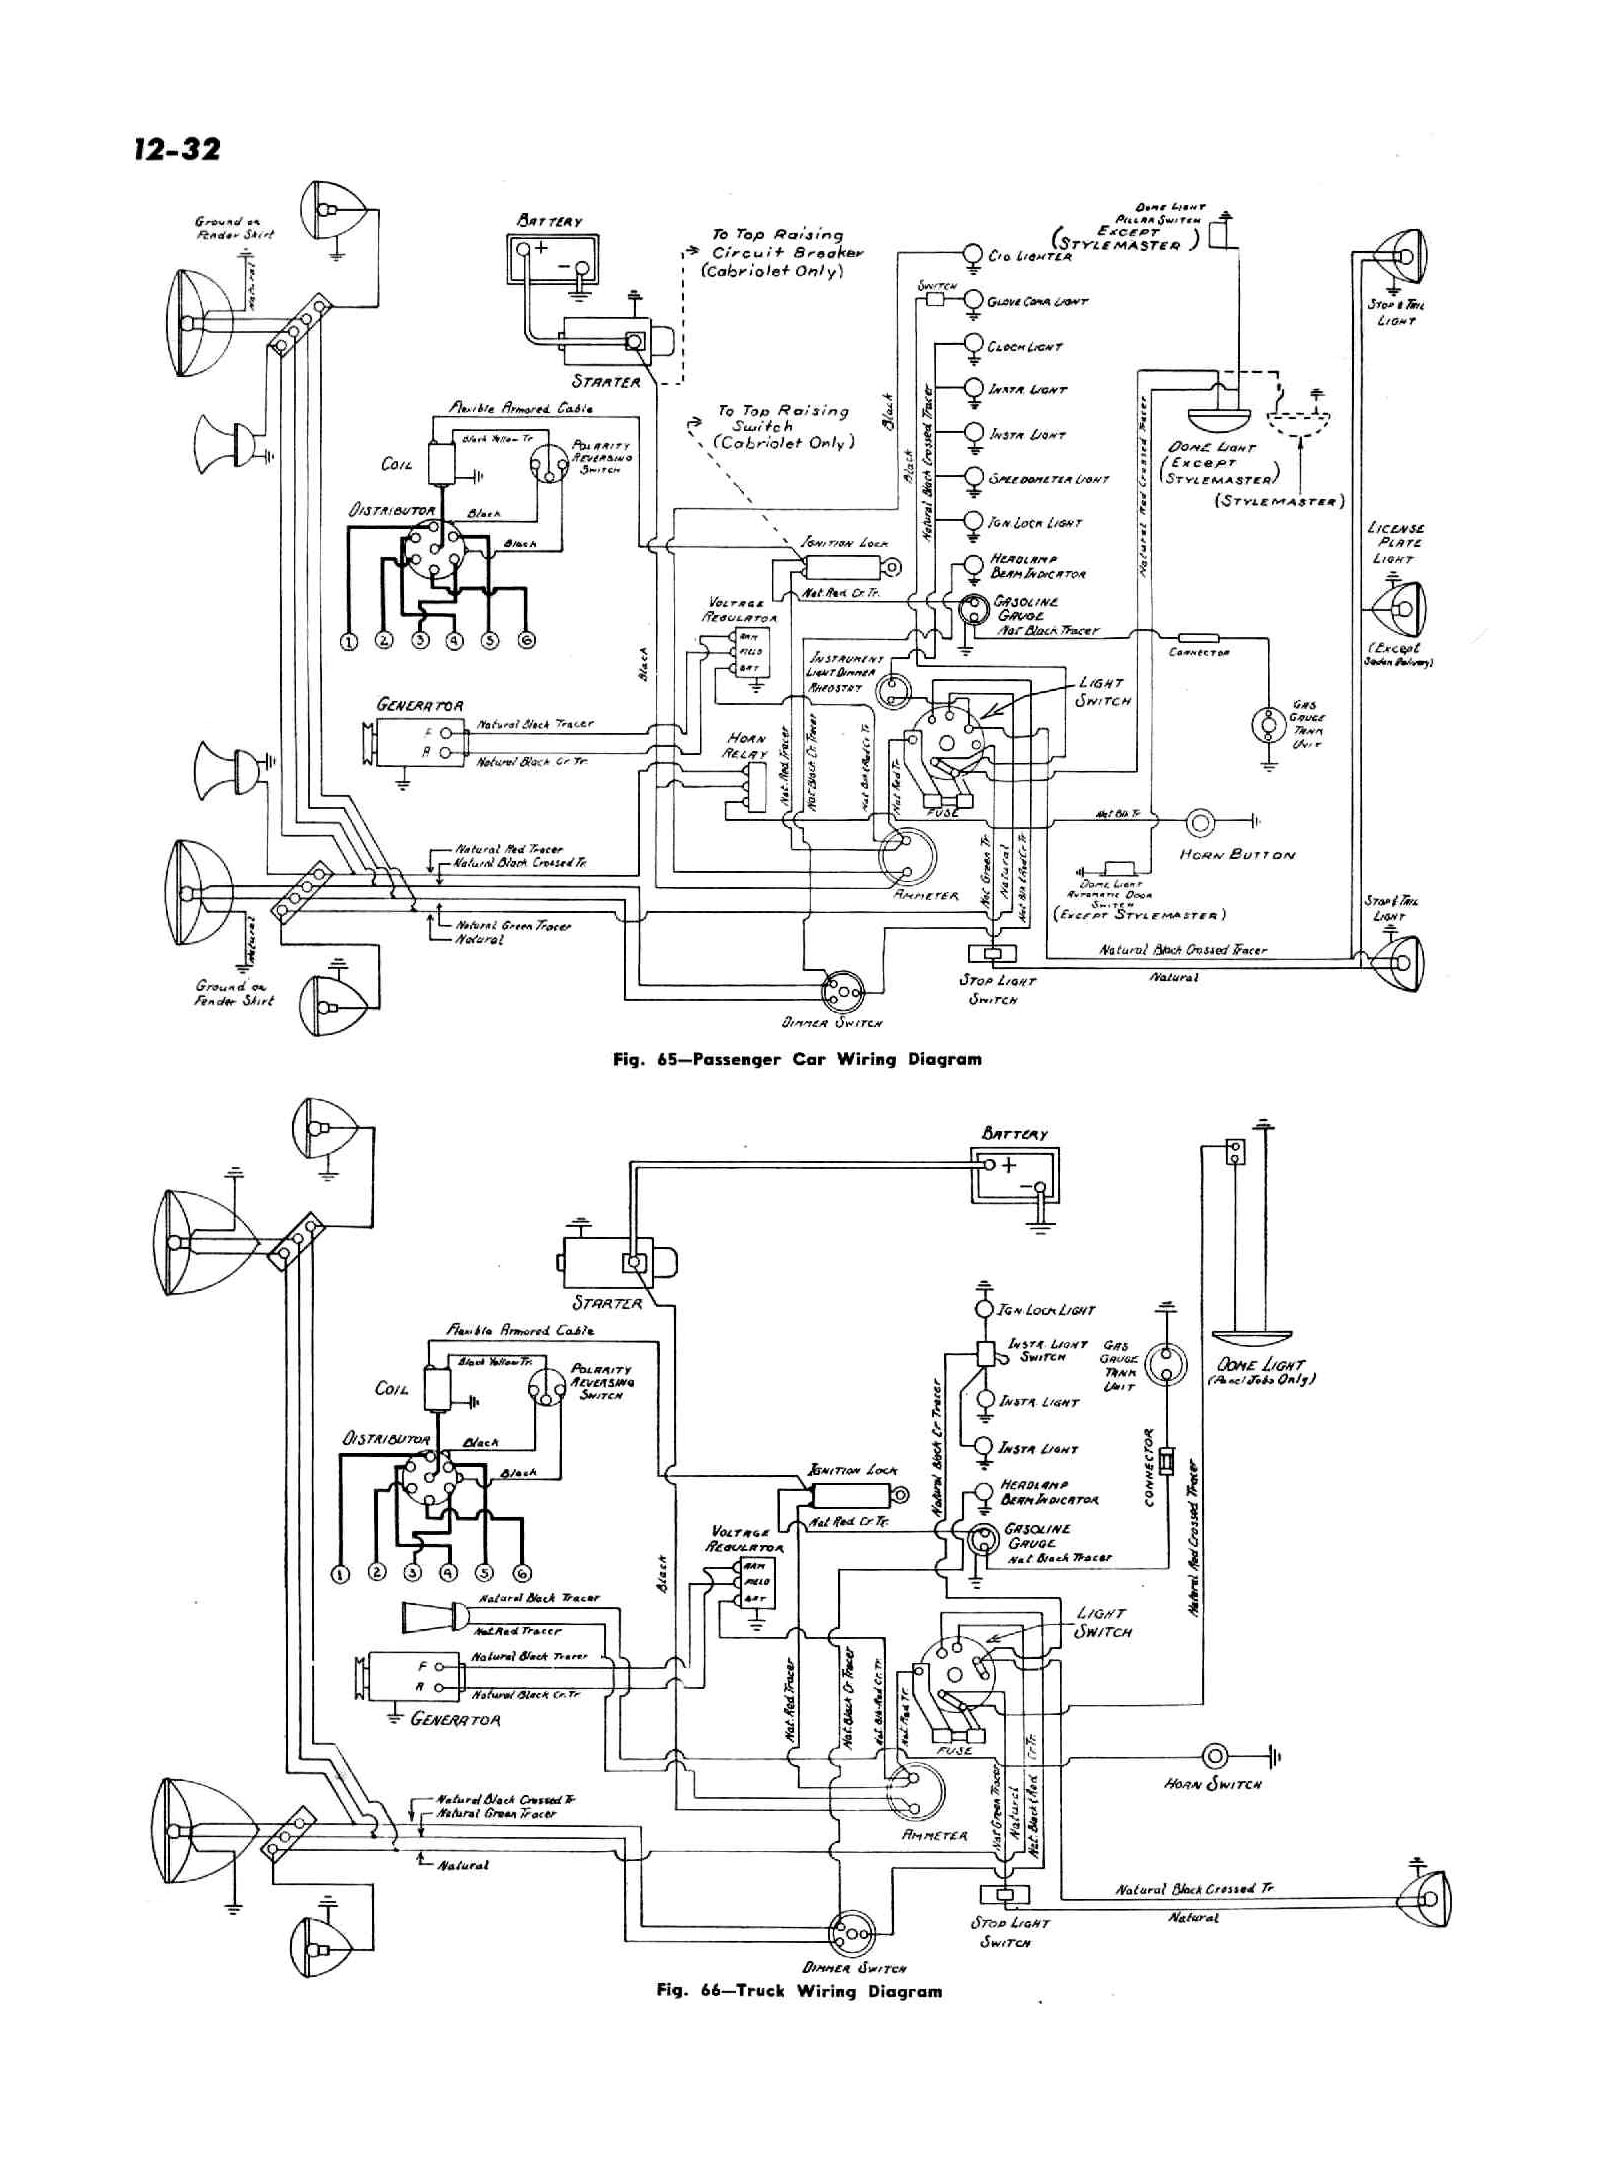 4247csm1232 chevy wiring diagrams 1960 chevy impala wiring diagram at crackthecode.co